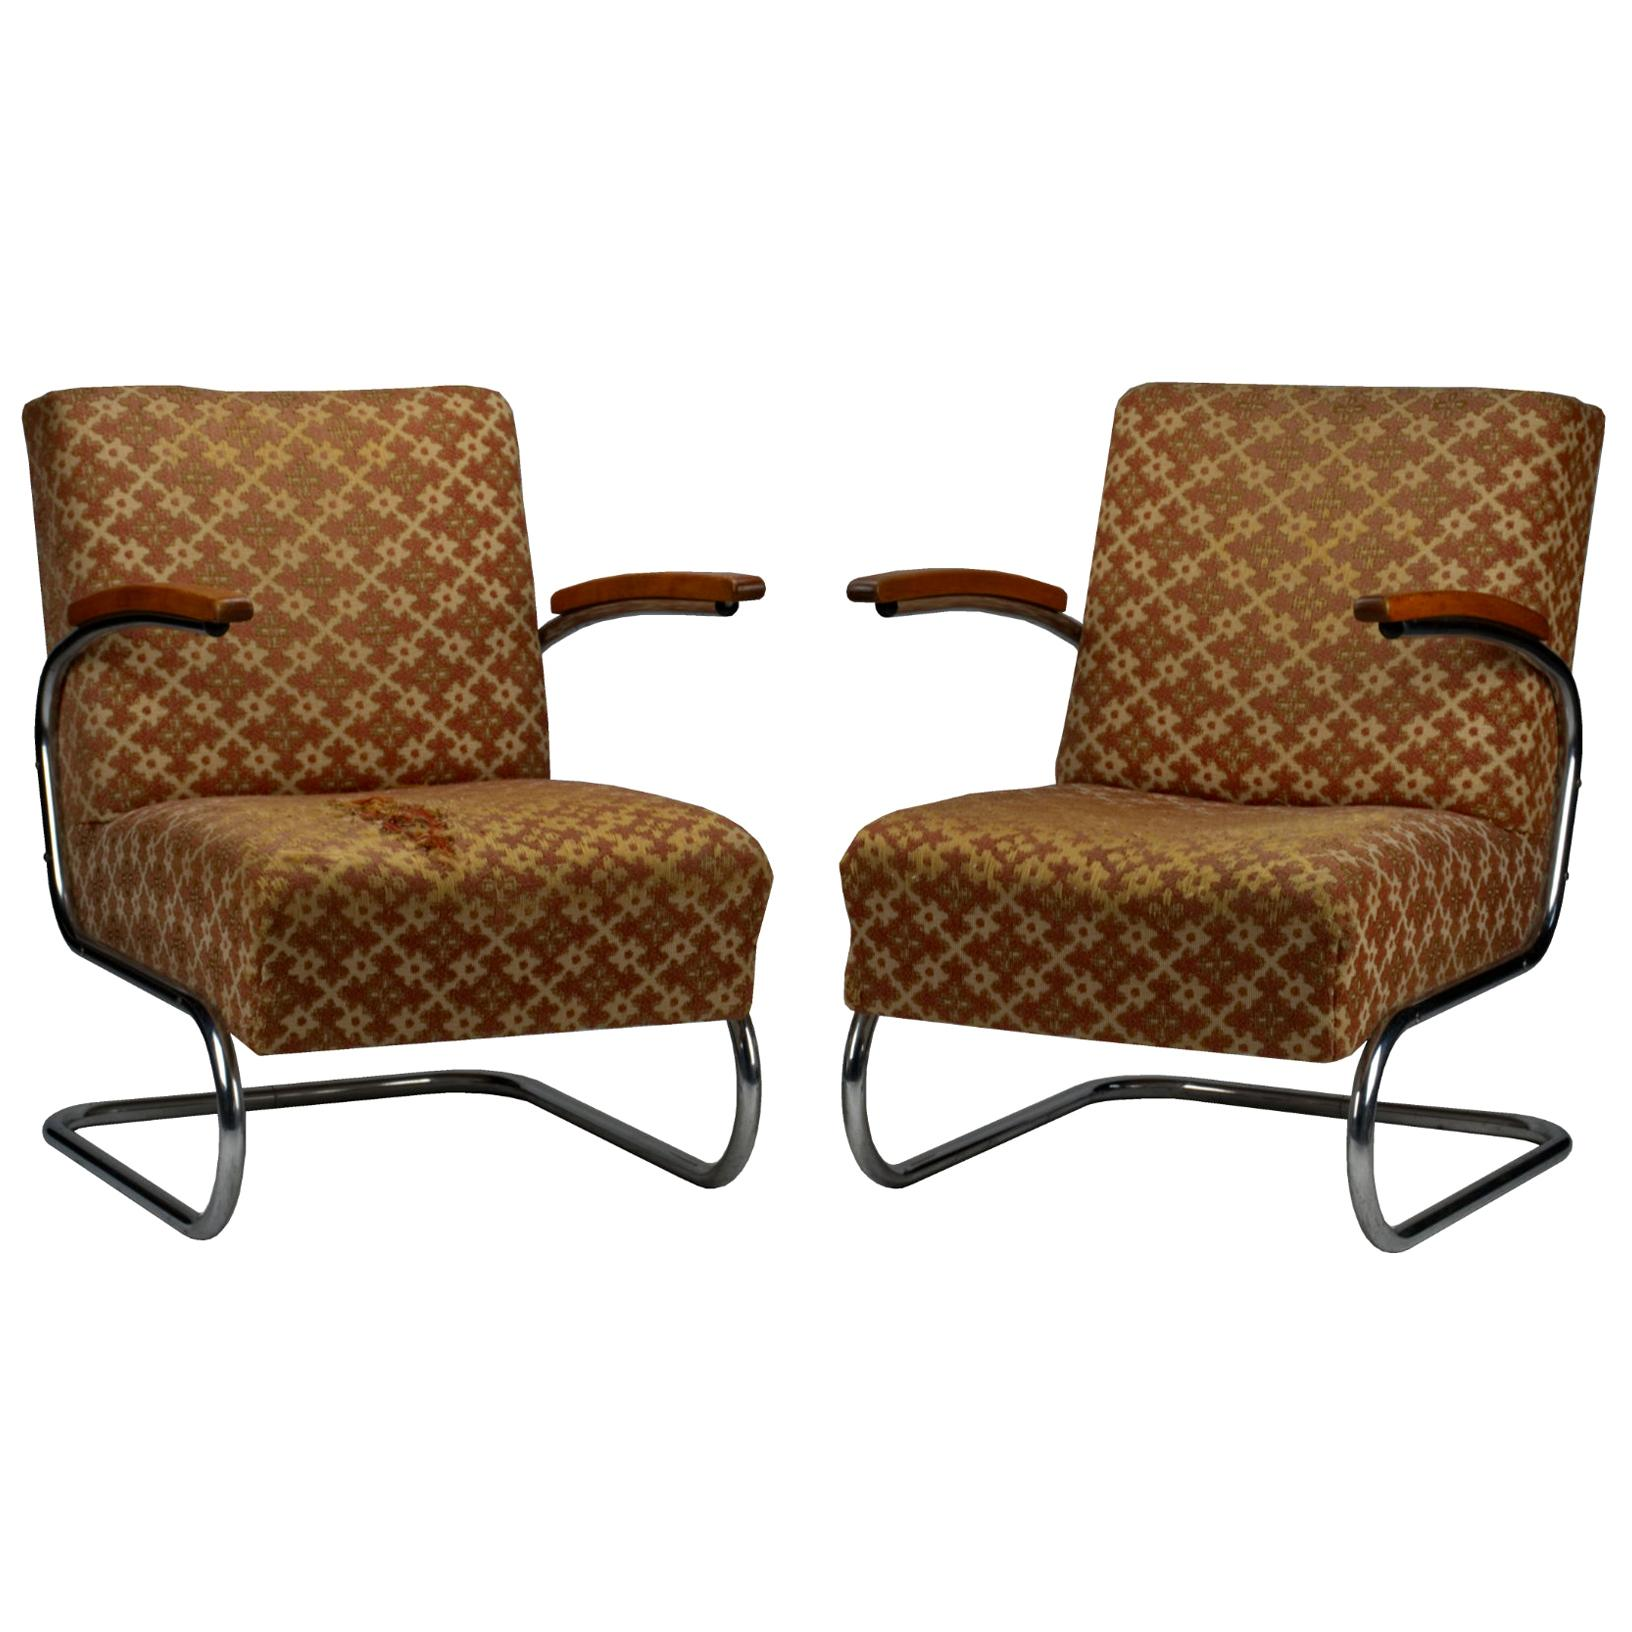 Chrome Tubular Steel Cantilever Armchairs S 411 by Thonet, circa 1930